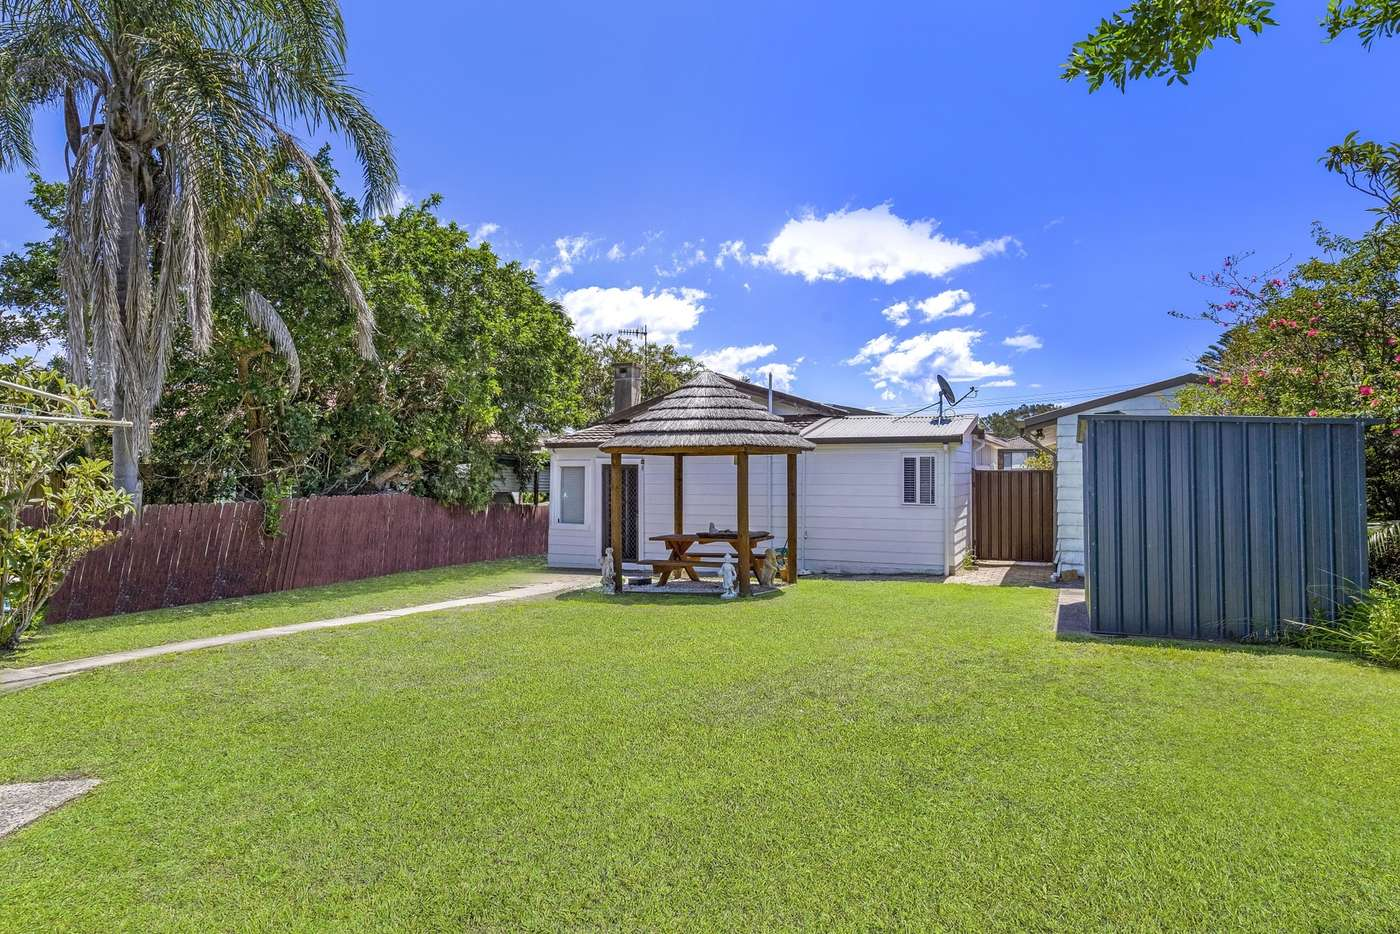 Fifth view of Homely house listing, 54 Lakeside Parade, The Entrance NSW 2261